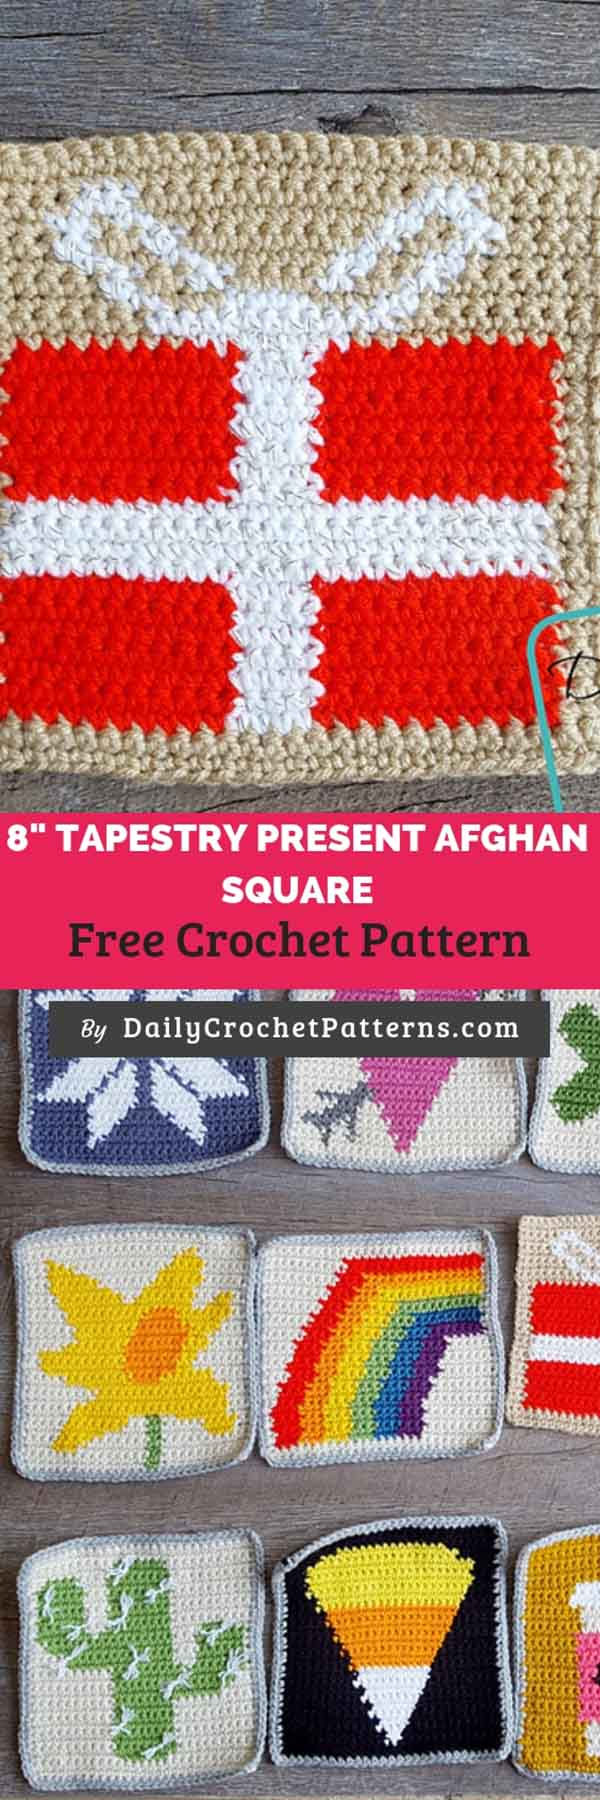 8 Tapestry Present Afghan Square Free Crochet Pattern Daily